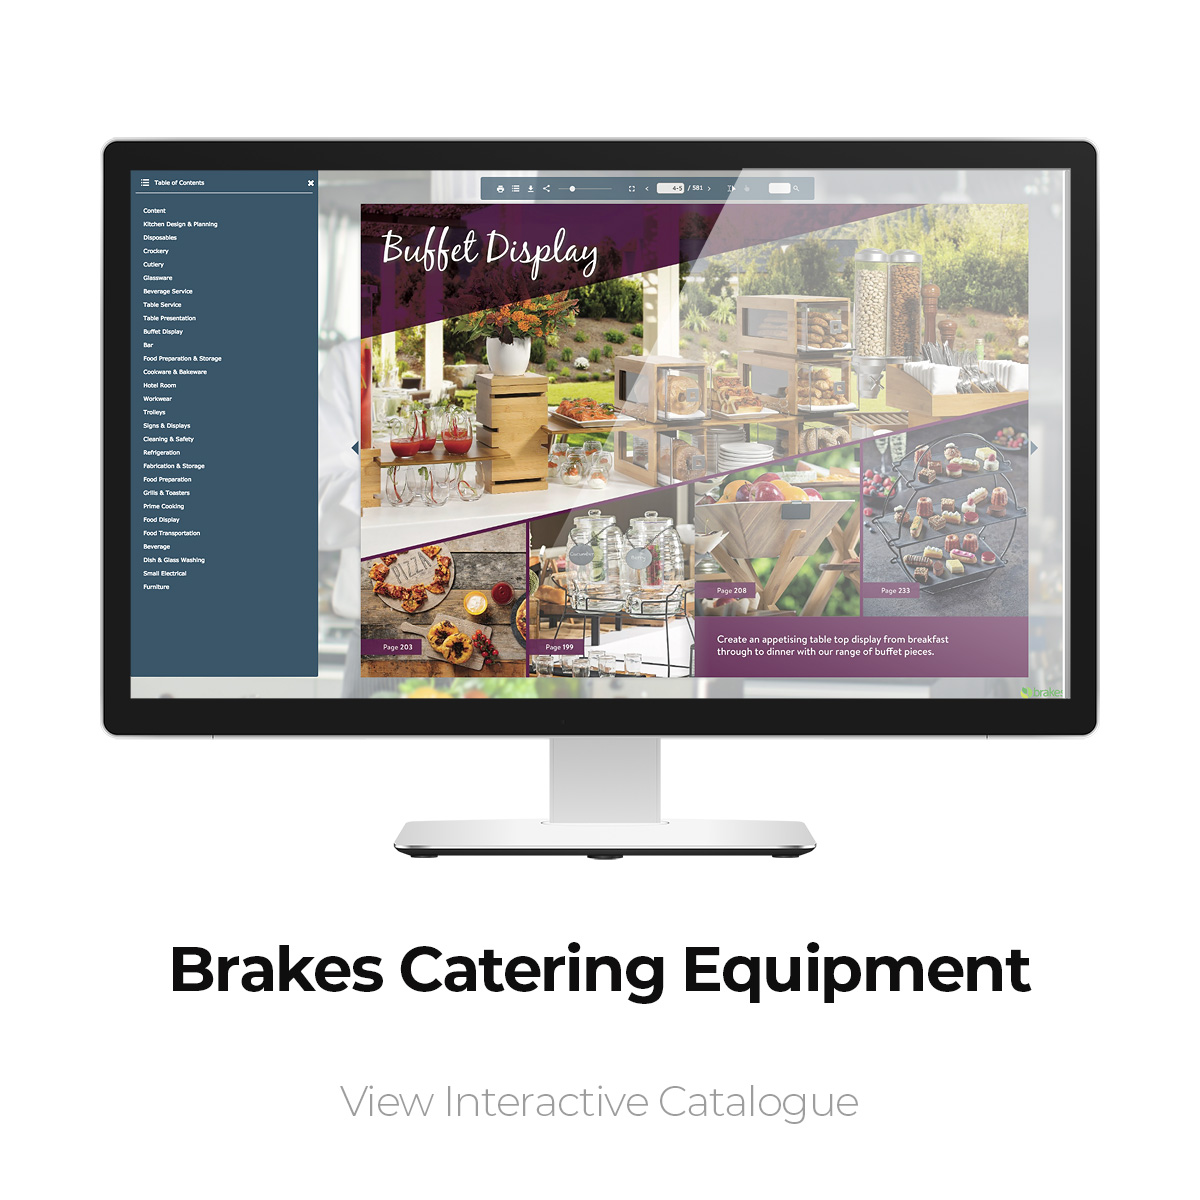 Brakes Catering Equipment Interactive Catalogue